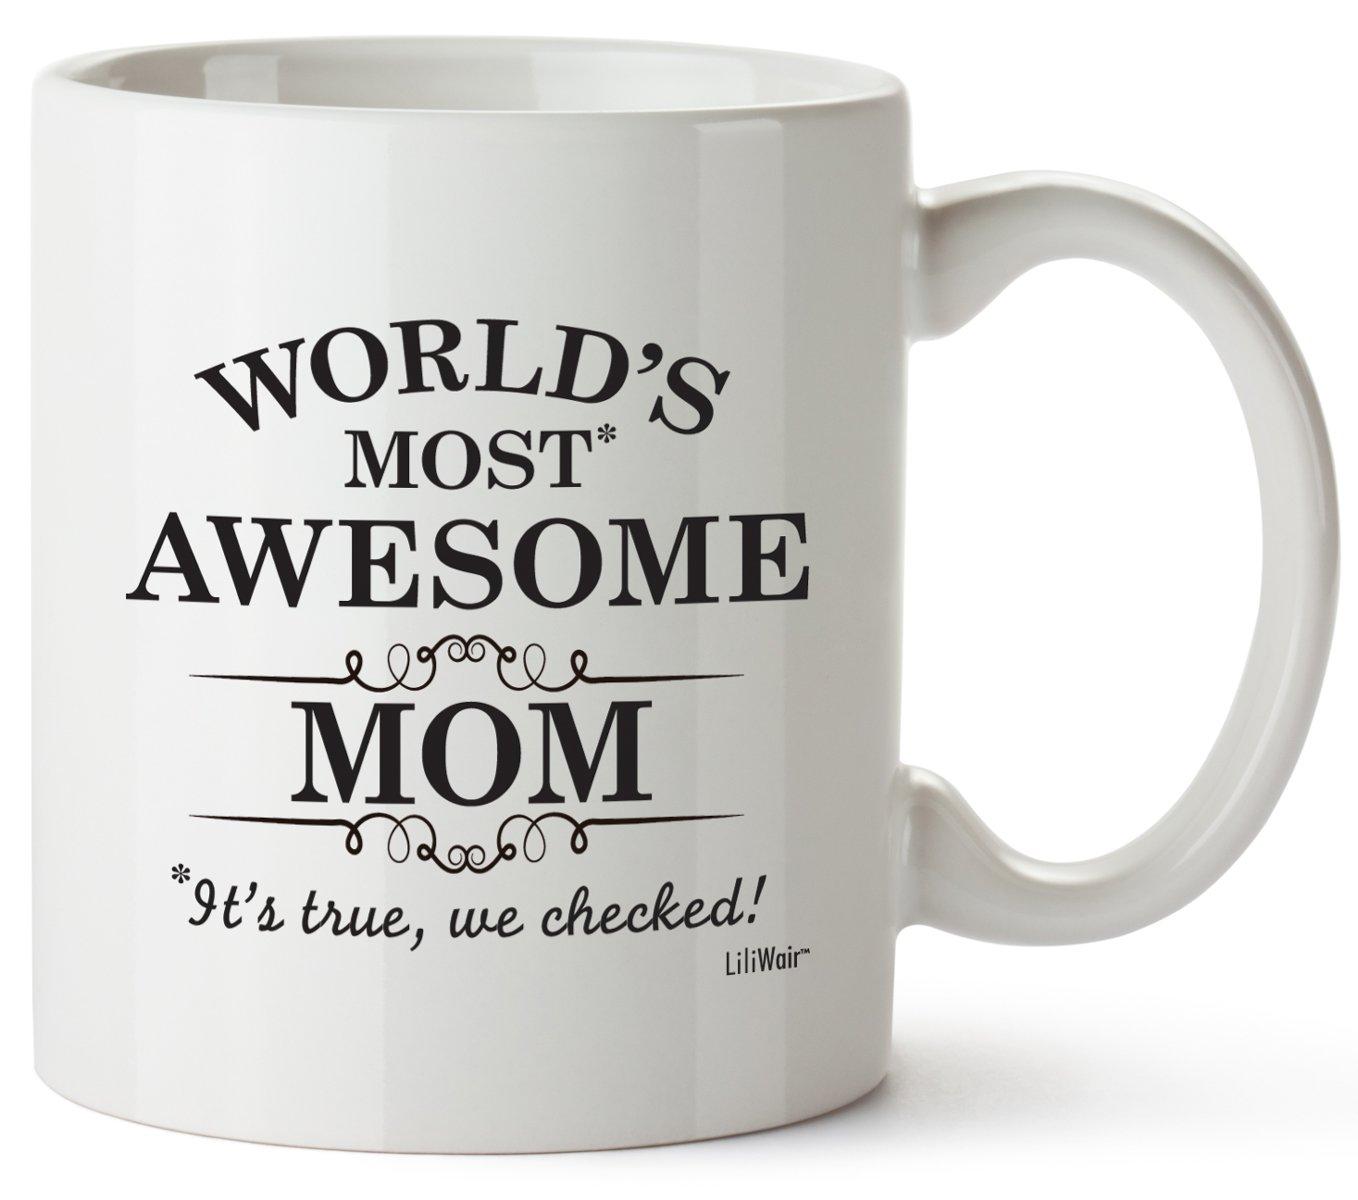 Mothers Day Gifts For Mom Gift Funny Birthday Coffee Cup Mugs From Daughter Son Motheru0027s Day Mug Presents in Law Step Moms Best Funny Unique Sarcastic ...  sc 1 st  Amazon.com & Amazon.com: Mothers Day Gifts For Mom Gift Funny Birthday Coffee Cup ...